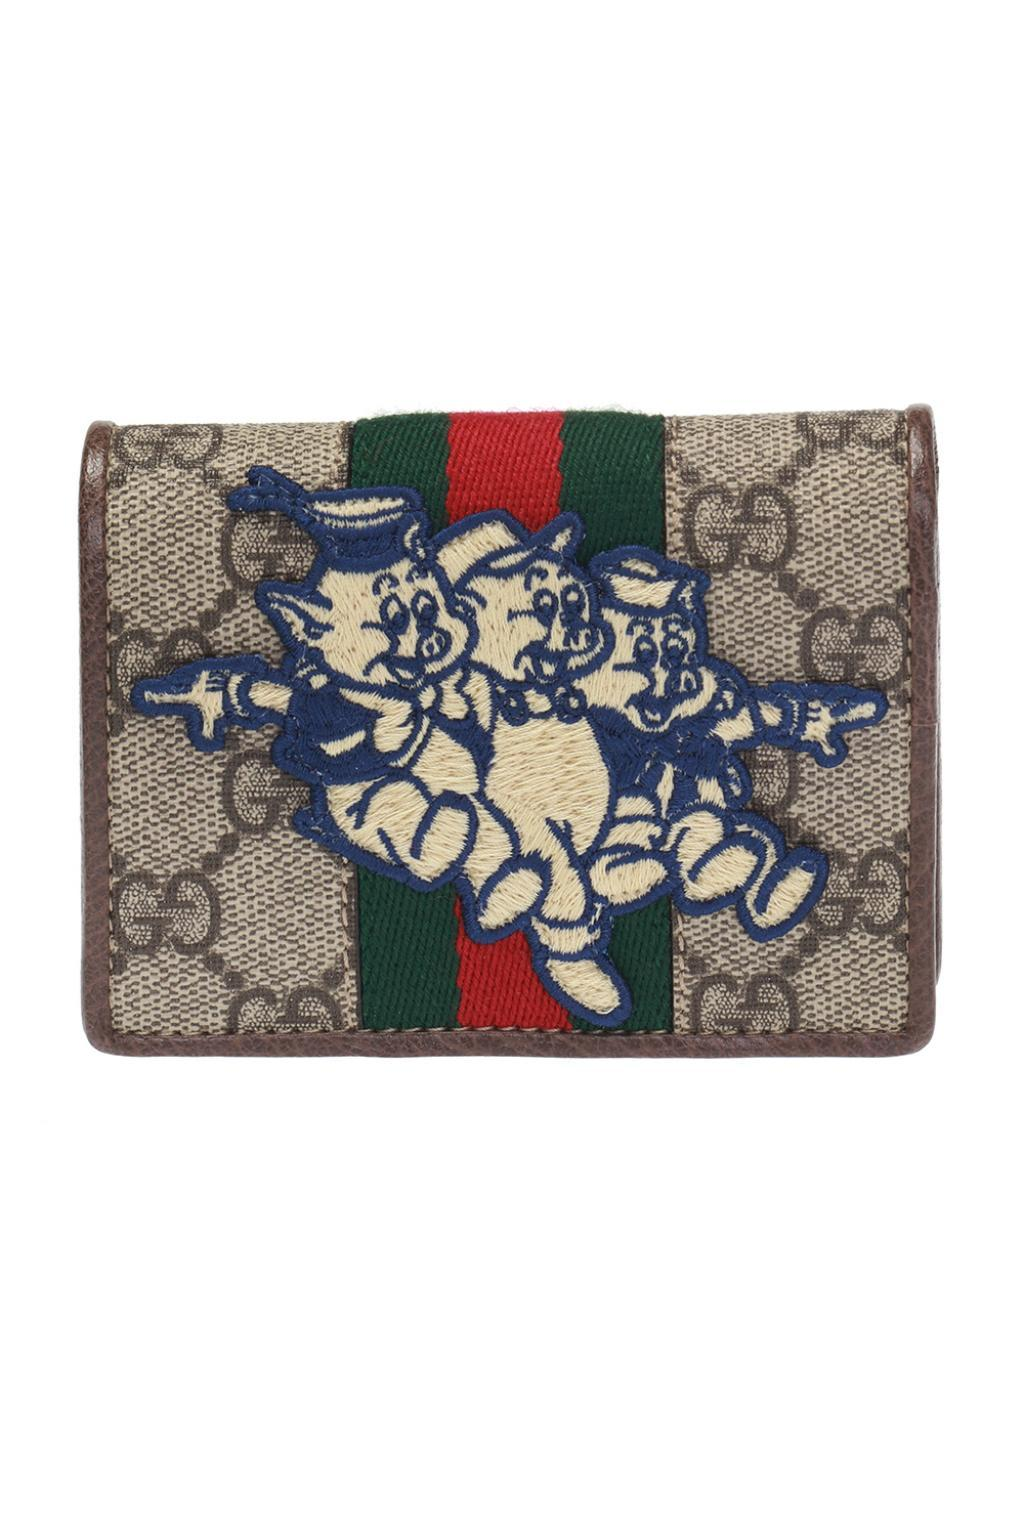 6c3bb065aab85a Gucci GG Card Case With Three Little Pigs in Brown - Lyst